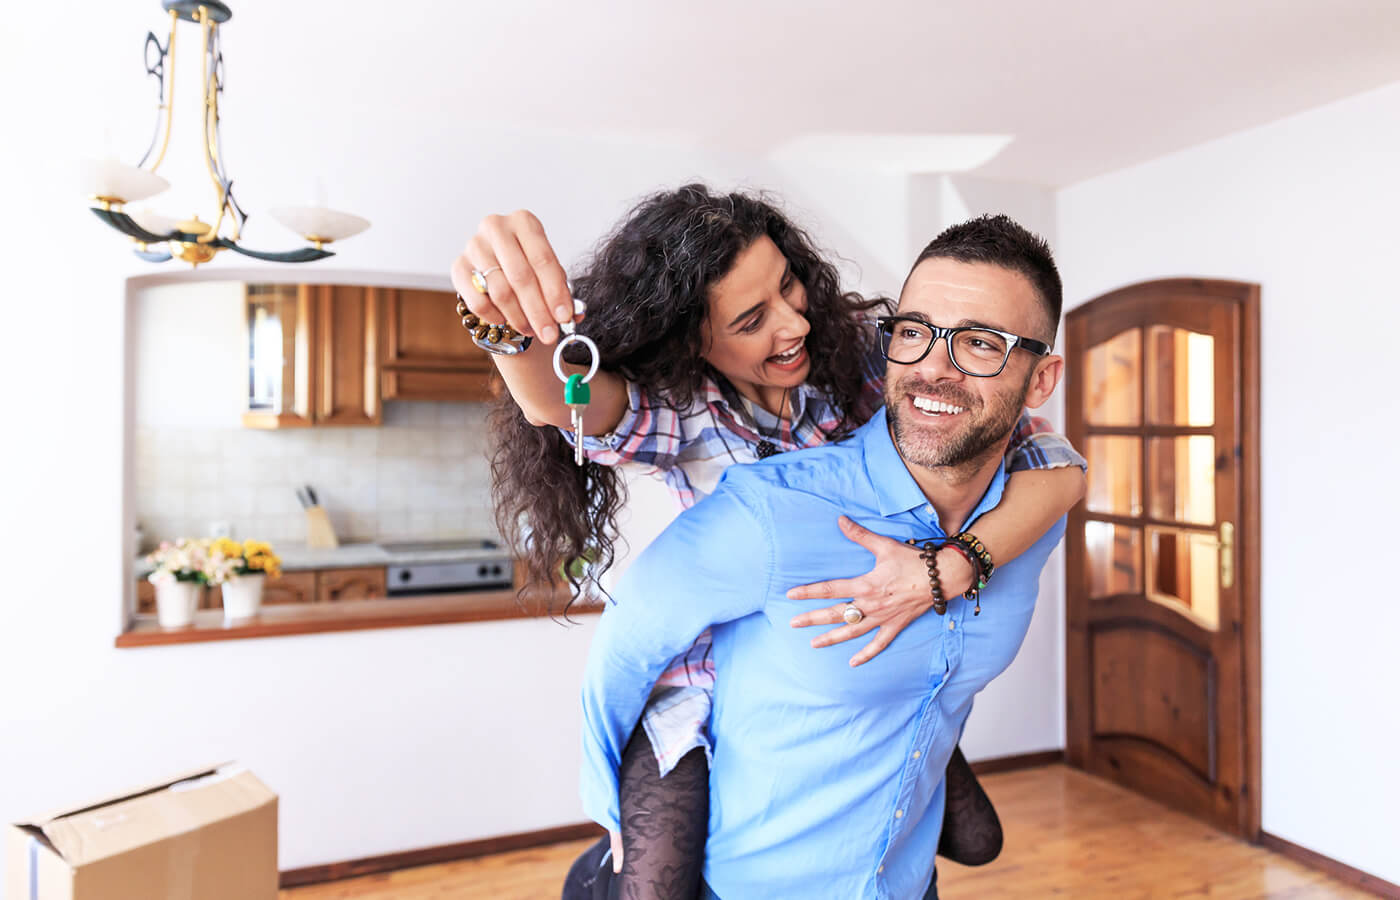 A Millennial's Guide to Buying Their First Home: Here's How - Experian